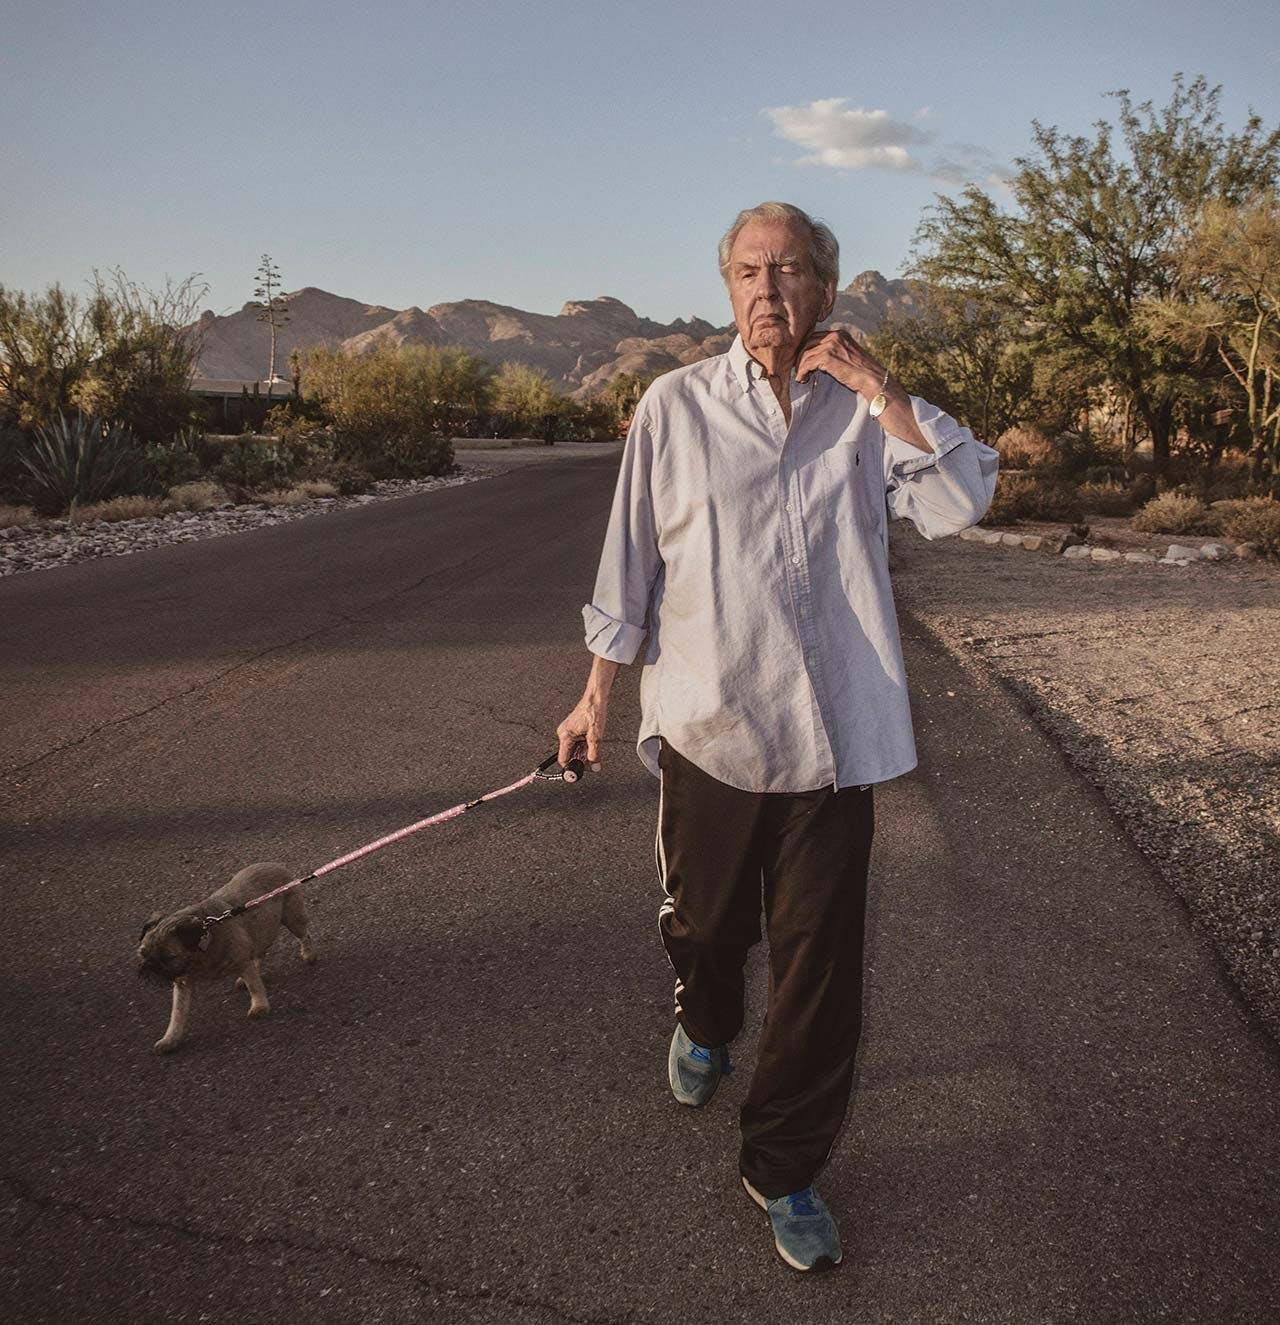 McMurtry on a walk in Tucson, where he lives part-time.